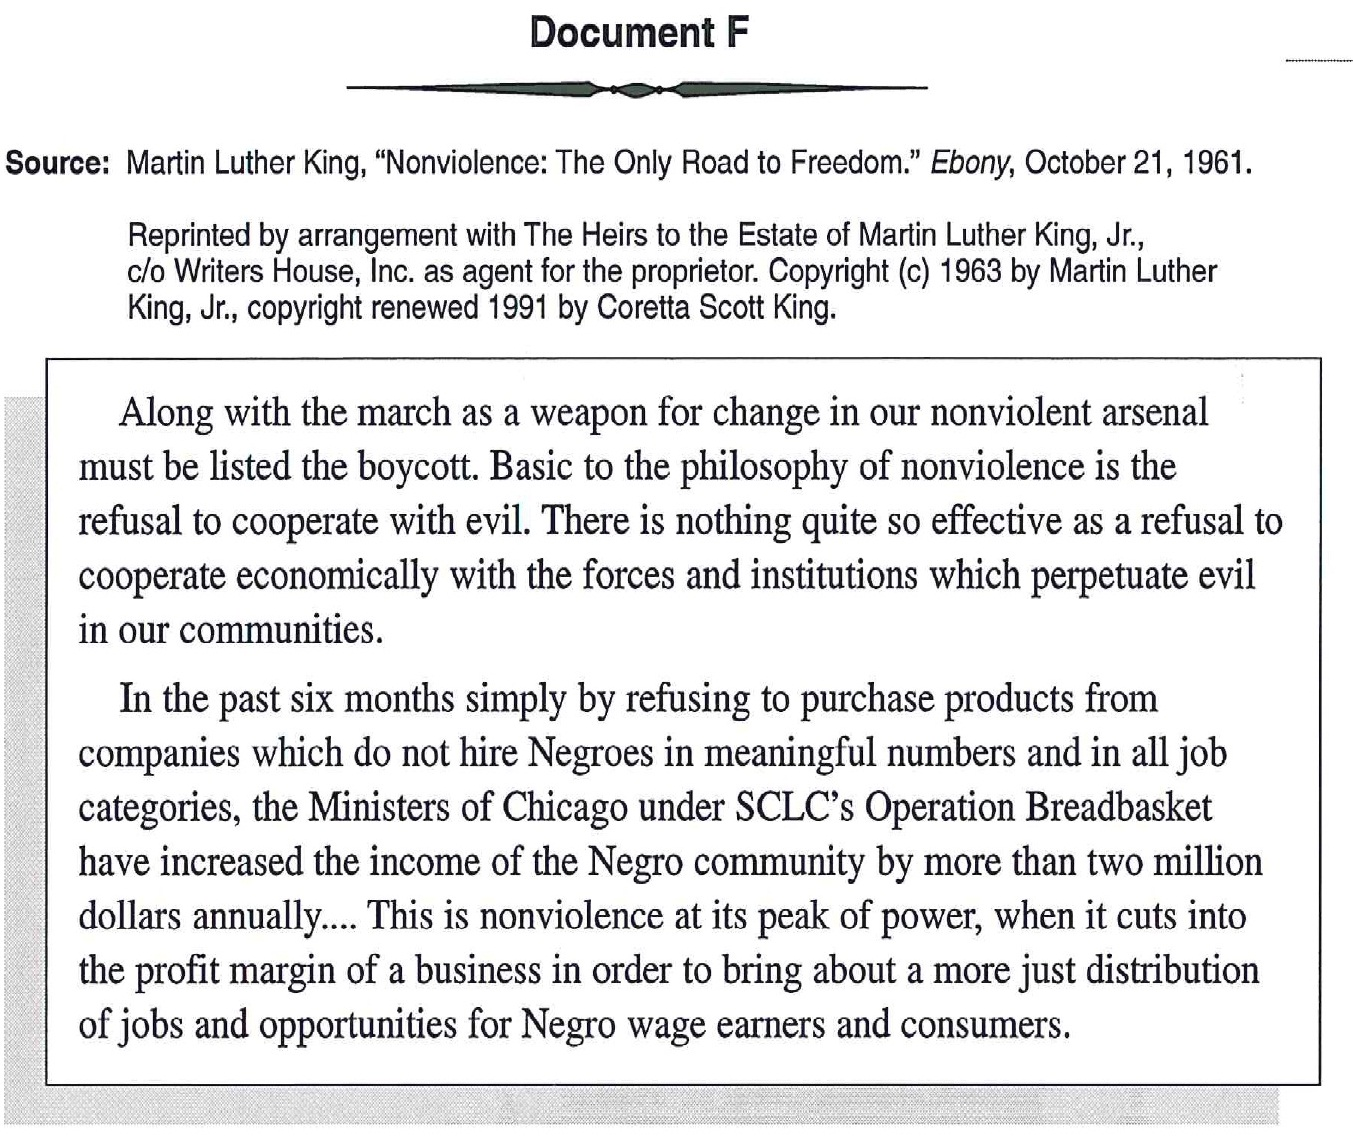 5 paragraph essay on martin luther king jr Martin luther king jr essays: over 180,000 martin luther king jr essays, martin luther king jr term papers, martin luther king jr research paper, book reports 184.